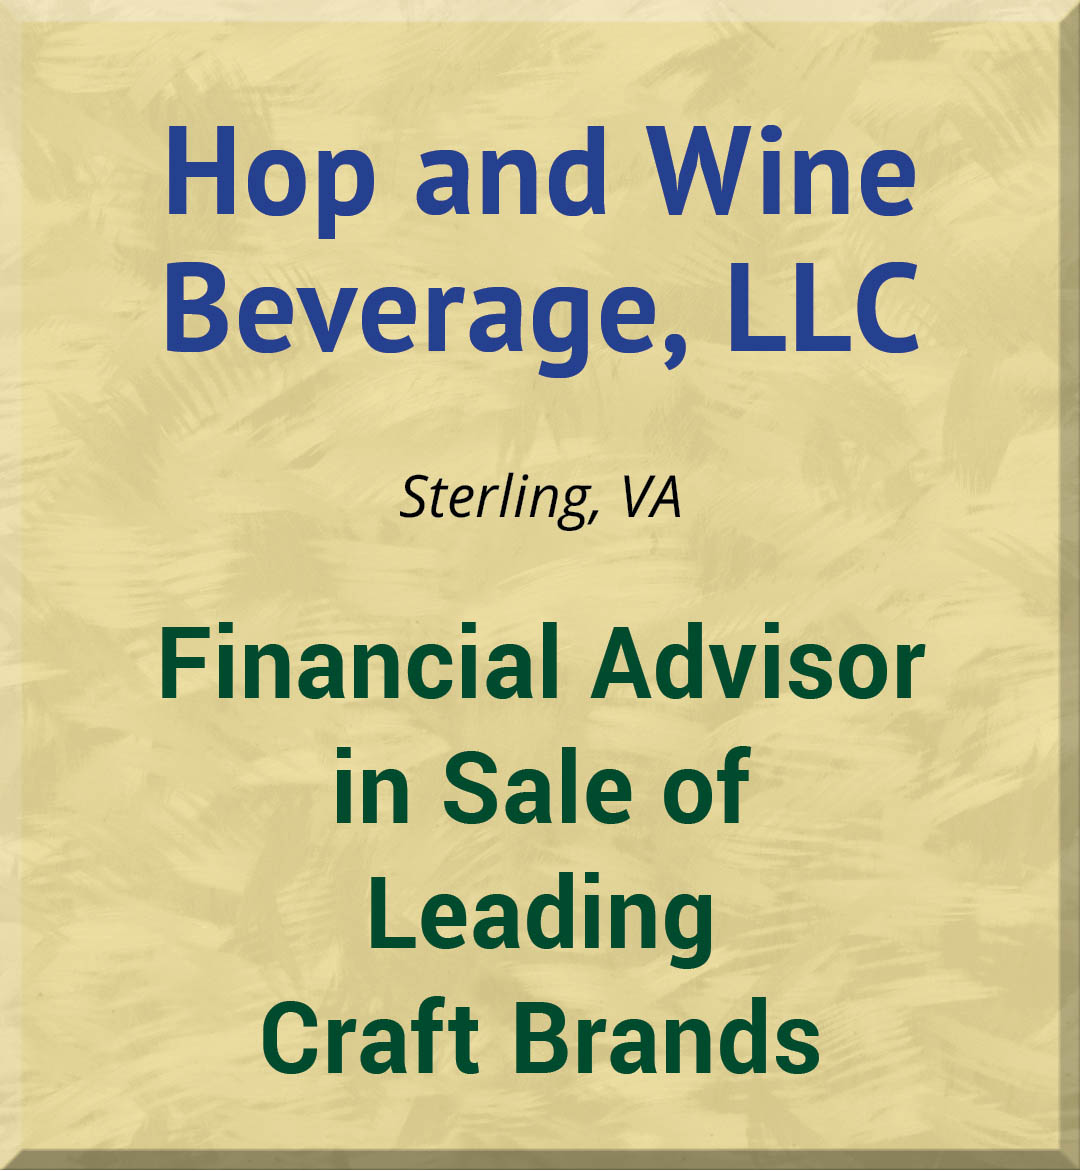 Hop and Wine Beverage, LLC